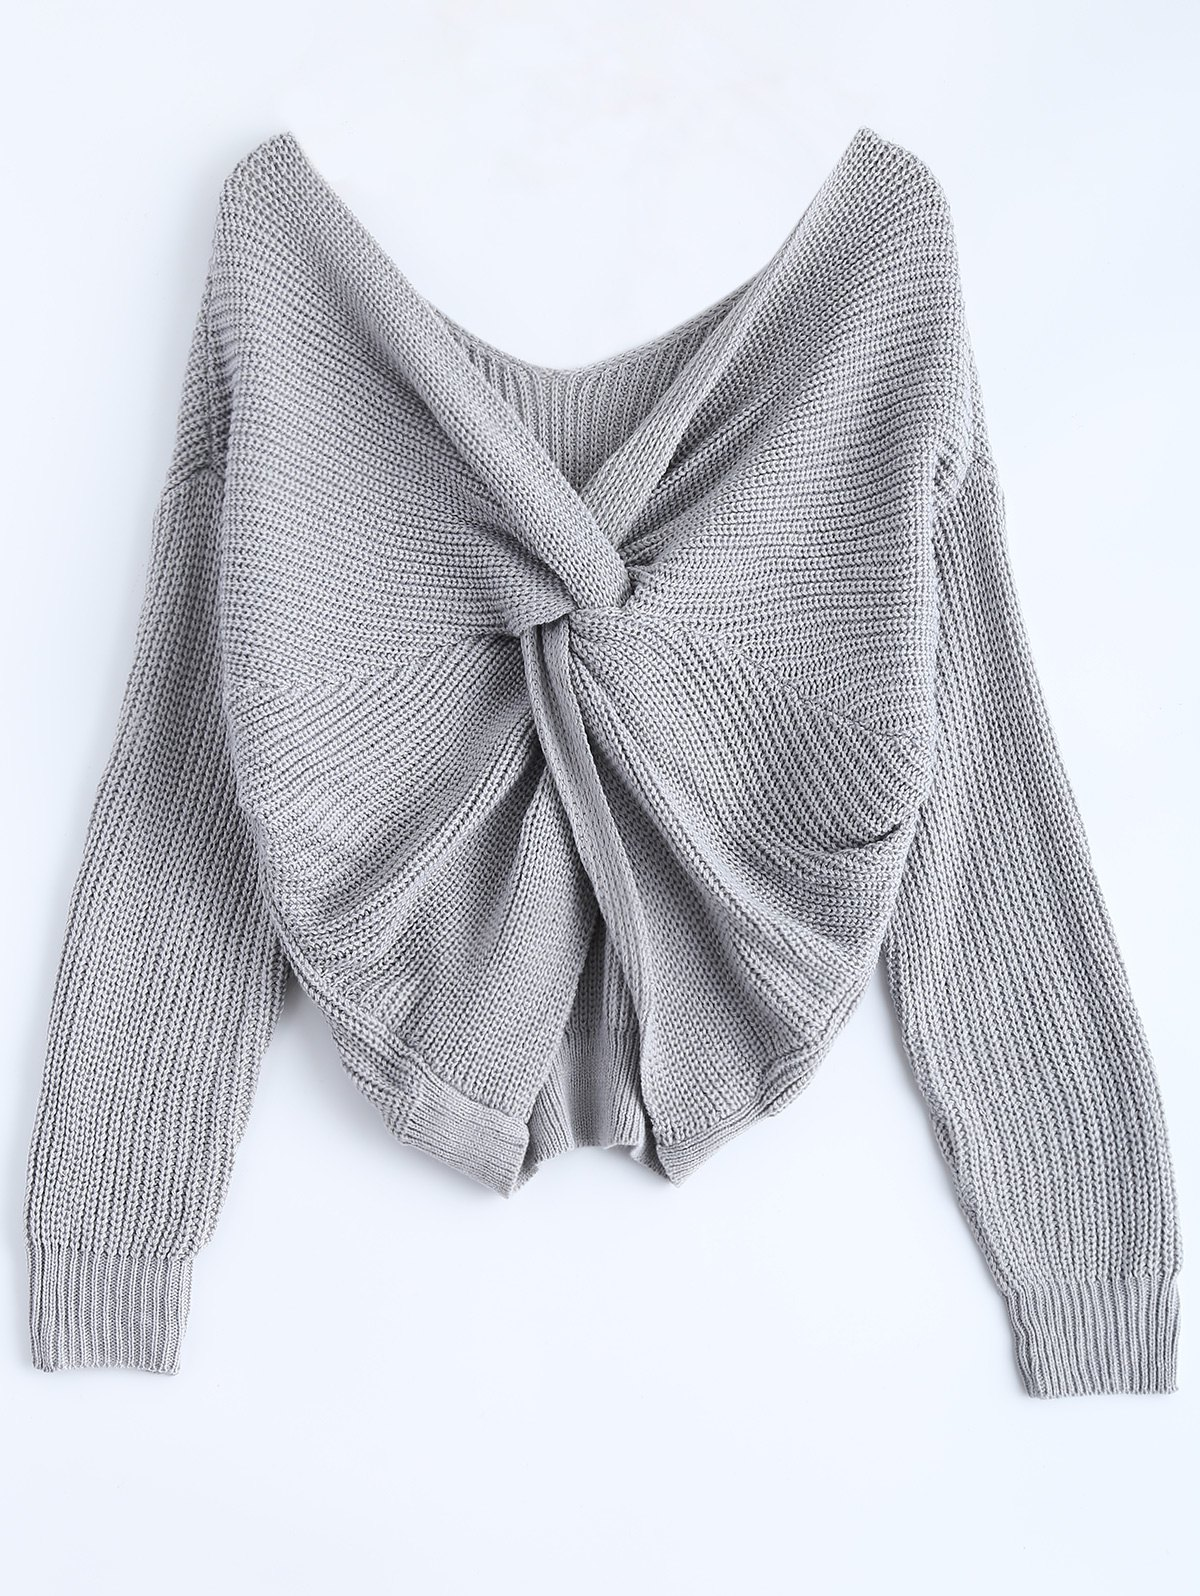 V Neck Knotted Back Chunky Jumper SweaterWOMEN<br><br>Size: ONE SIZE; Color: GRAY; Type: Pullovers; Material: Acrylic; Sleeve Length: Full; Collar: V-Neck; Style: Fashion; Pattern Type: Solid; Season: Fall,Spring; Weight: 0.390kg; Package Contents: 1 x Knitwear;